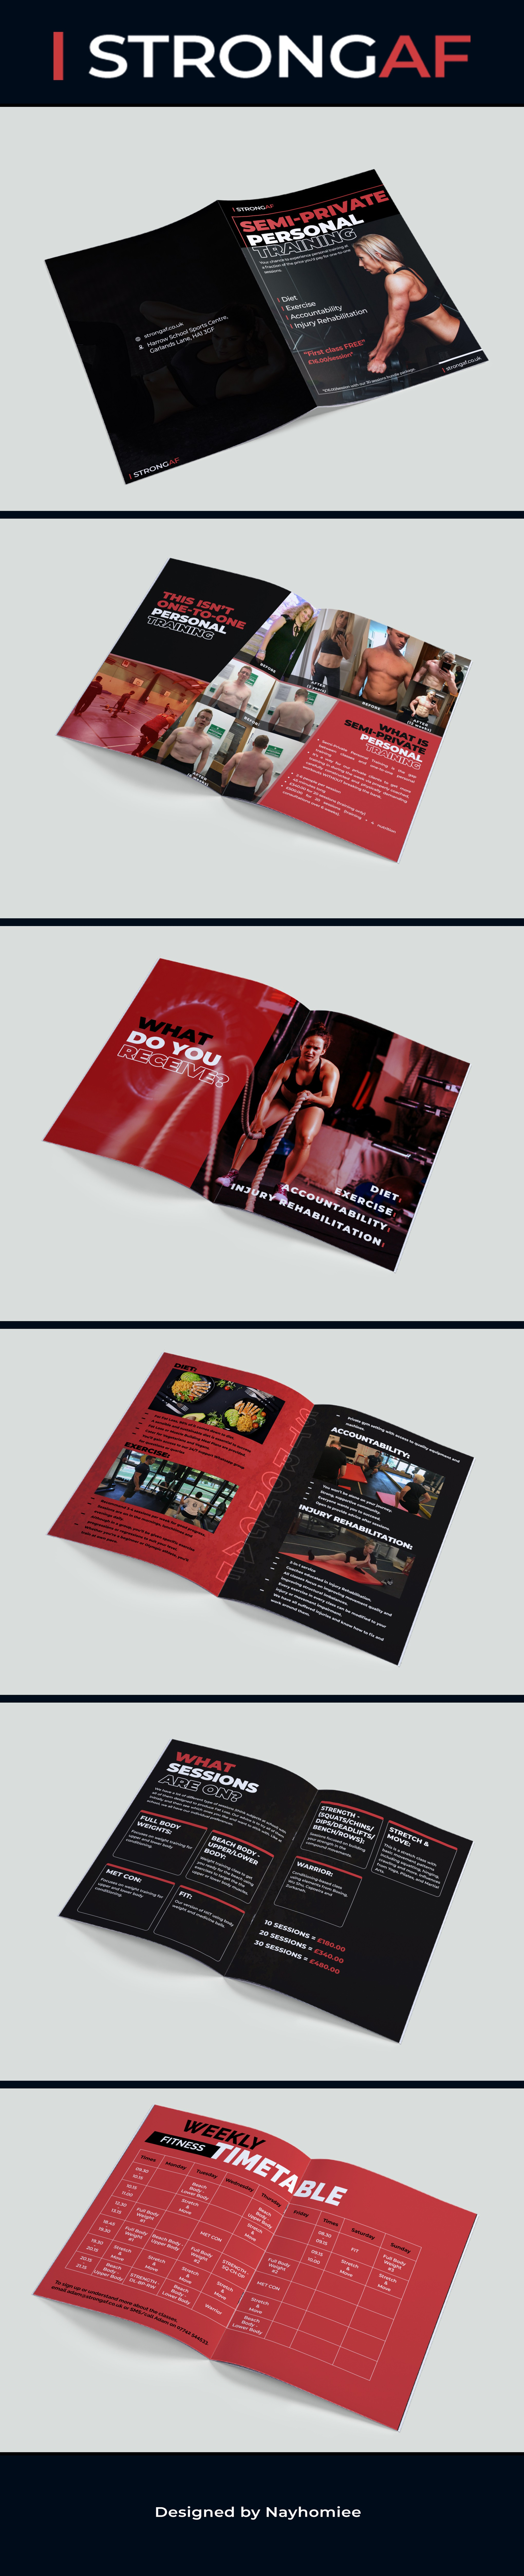 A4 Poster of STRONGAF Semi-Private Personal Training + Mention of our Summer Offer